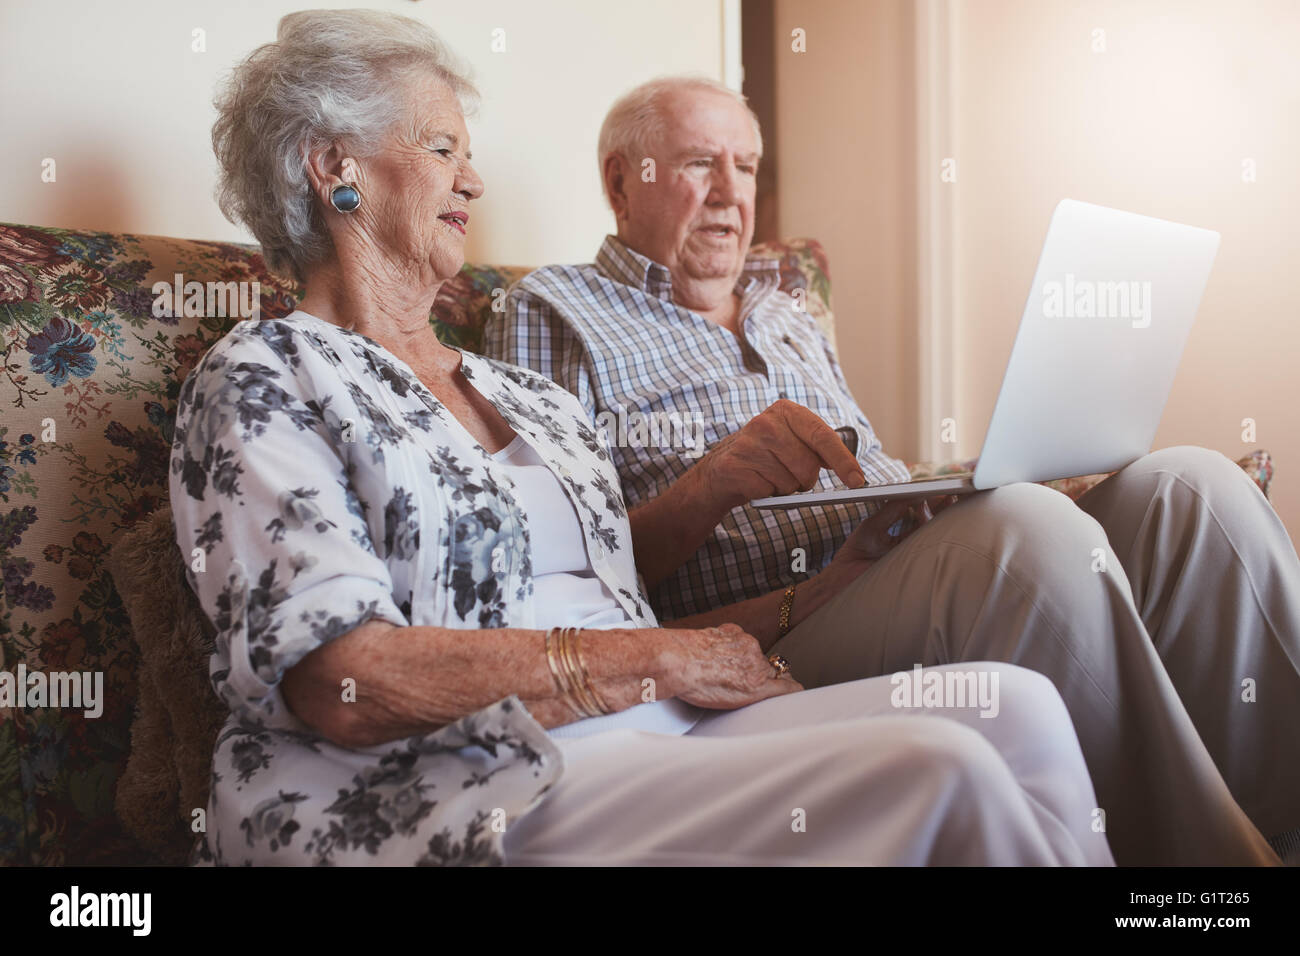 Indoor shot of senior couple sitting on a couch with a laptop computer. Old man and woman relaxing on a sofa using - Stock Image